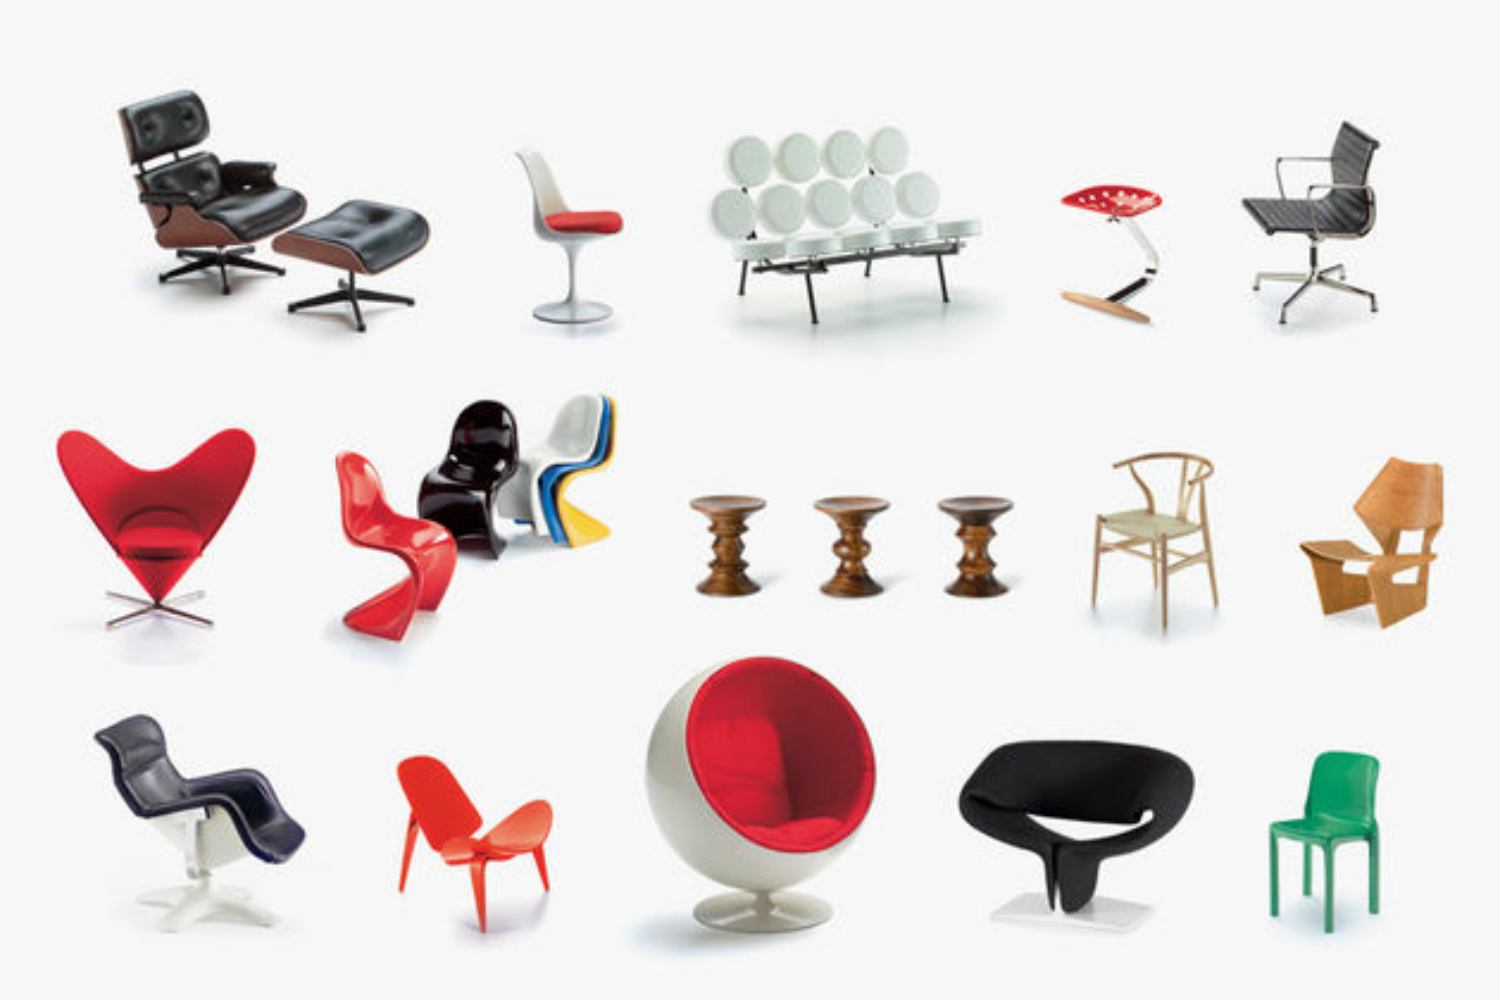 Miniatures Collection 2 by Vitra Design Museum for Vitra Space